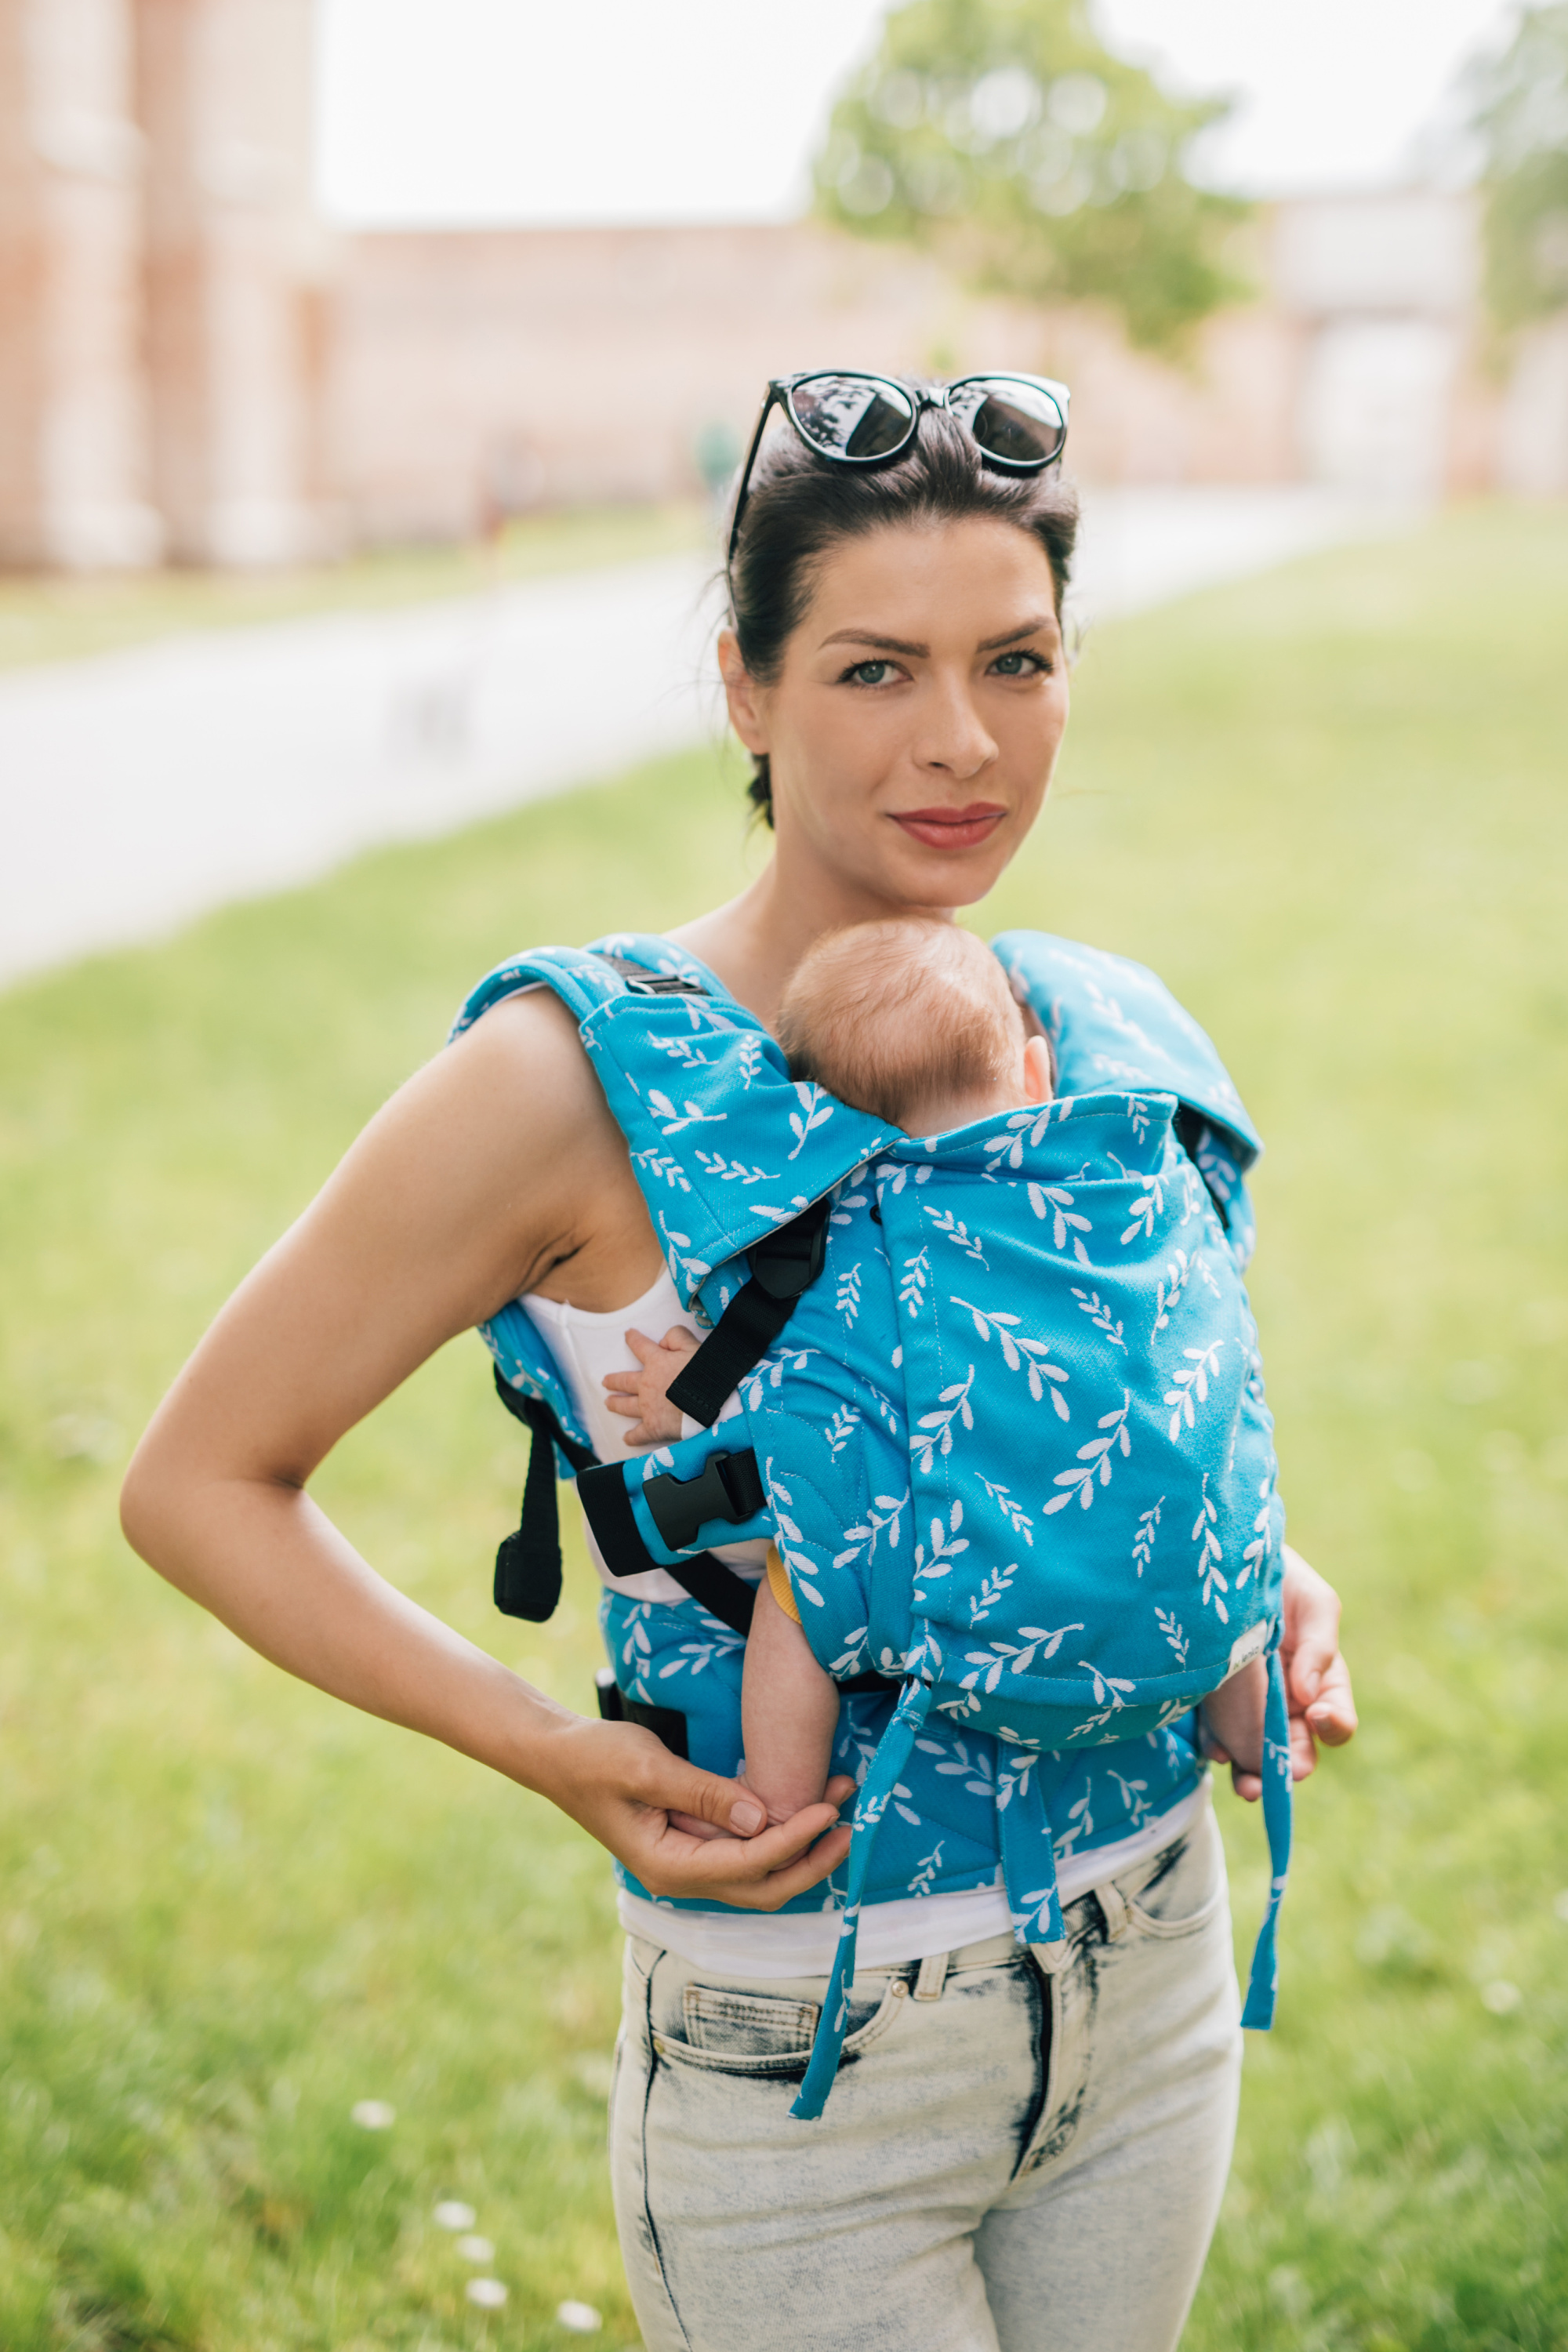 Baby carrier - Be Lenka Mini - Leaves - Azure classic without the possibility of crossing